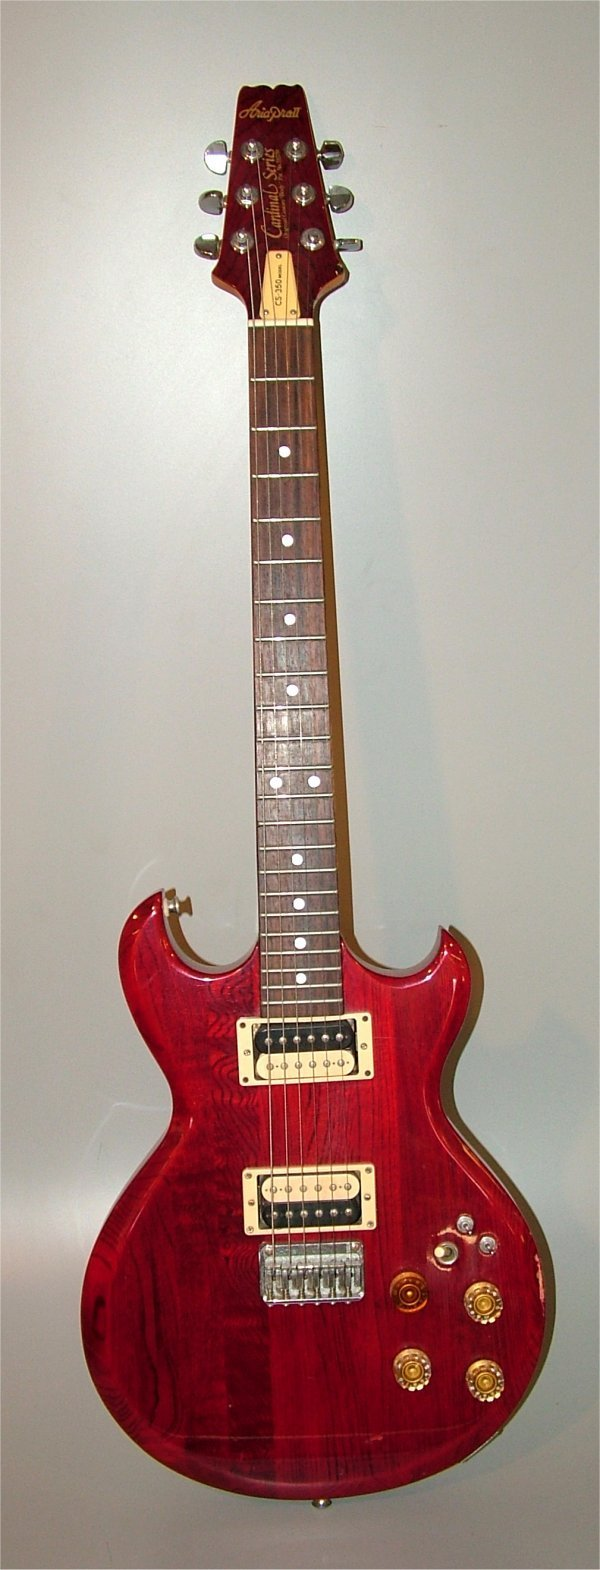 5005: ARIA PRO II C.S. 350 MODEL ELECTRIC GUITAR, MINOR